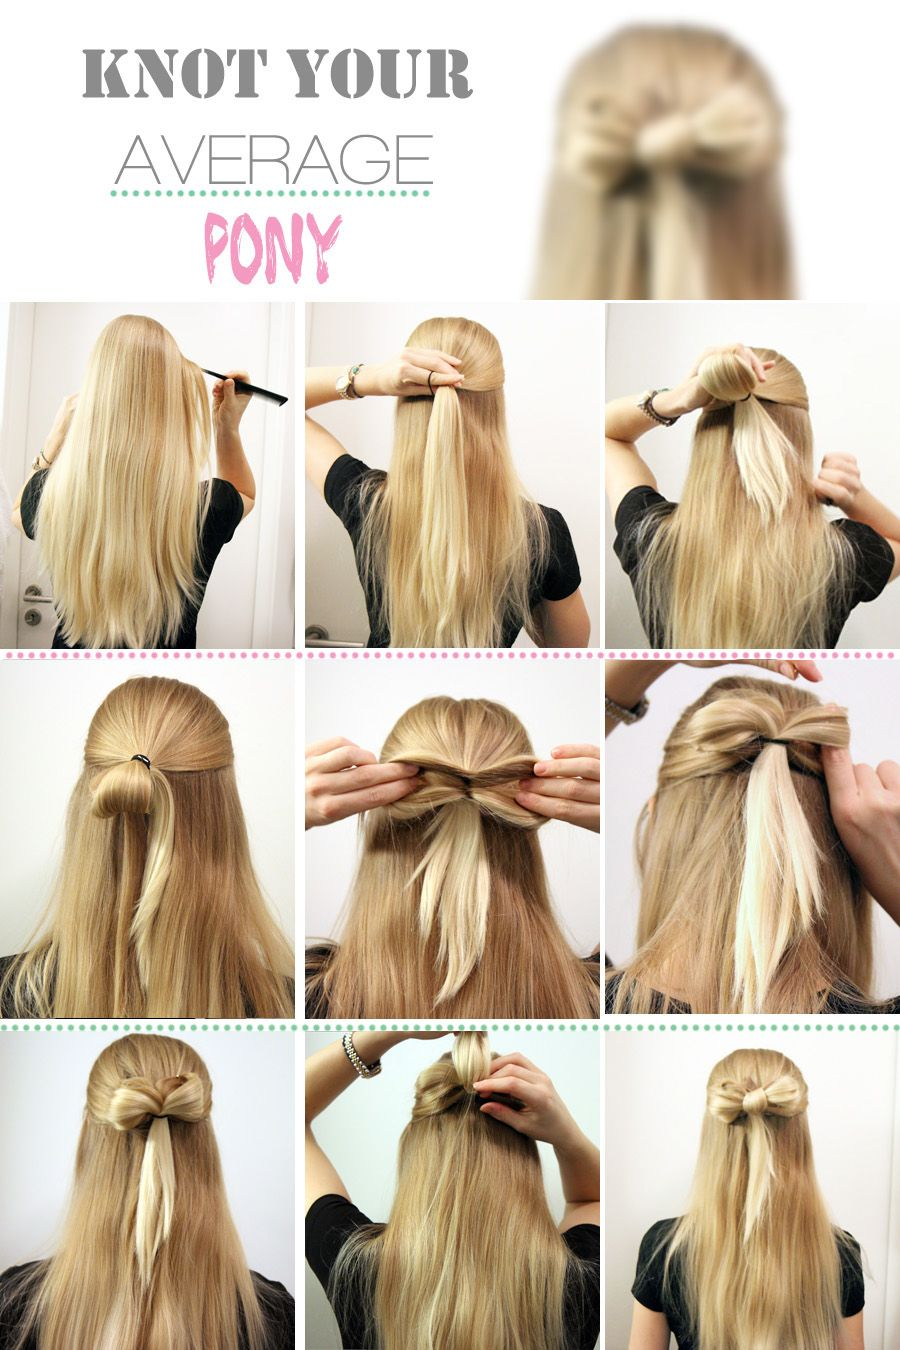 Knot tutorial copy tutorial knot your average pony my style